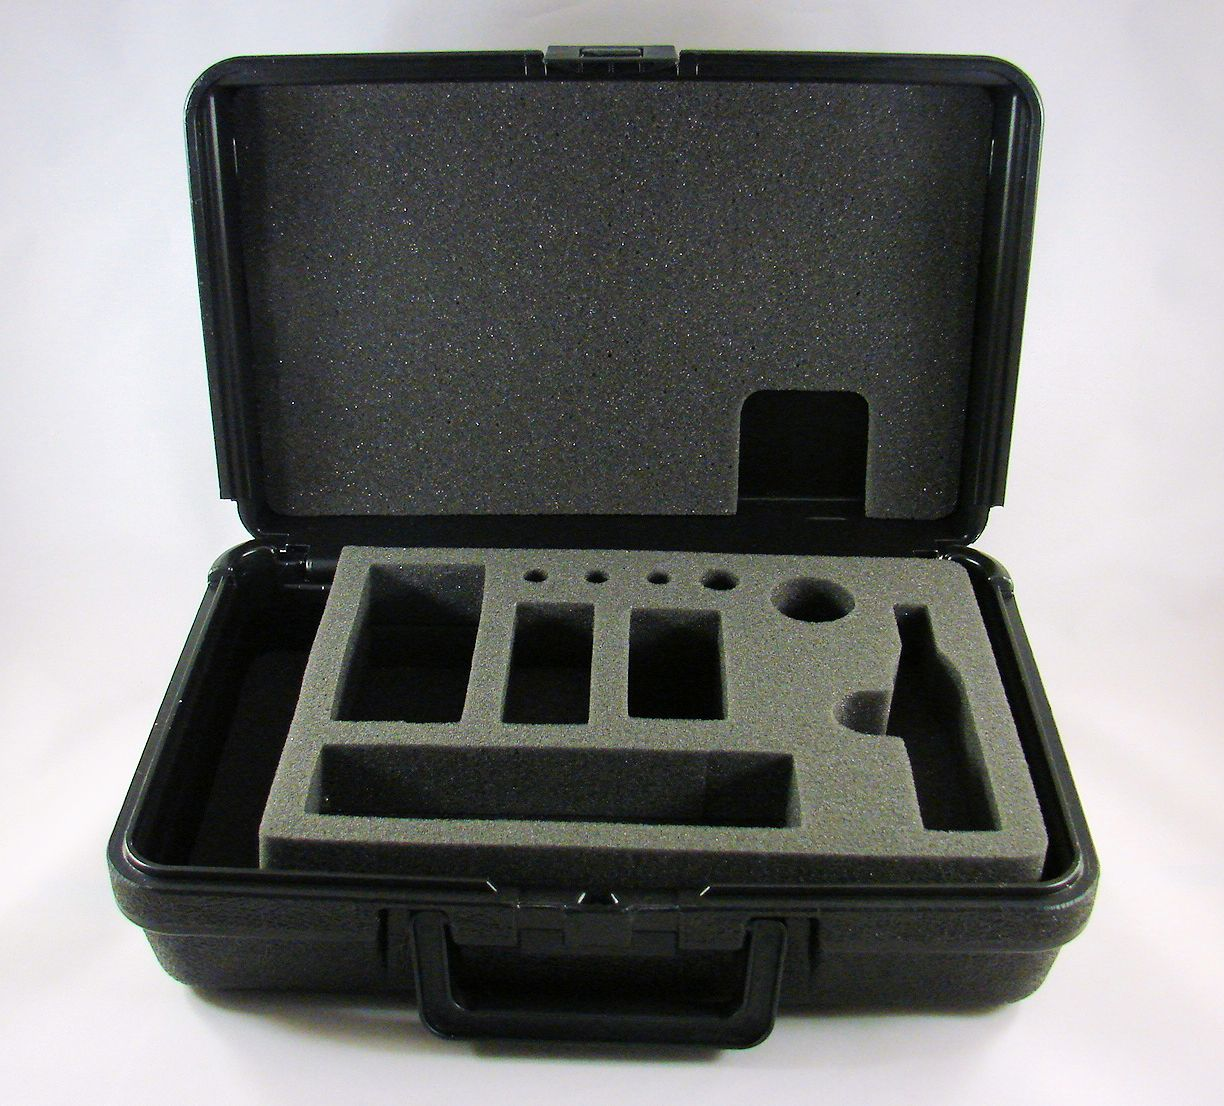 Spotty UV cure unit Carrying Case